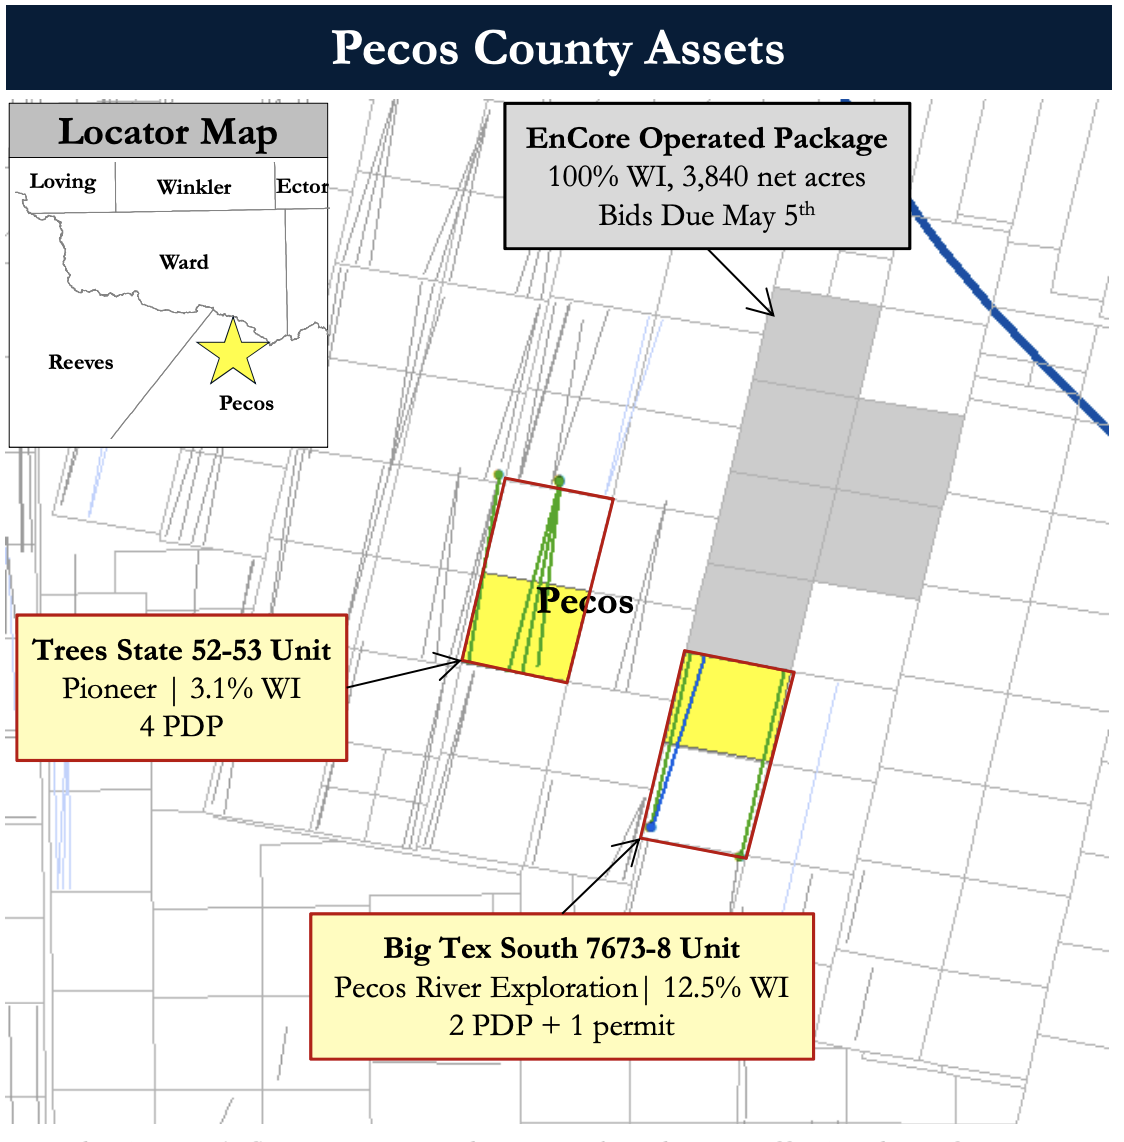 PetroDivest Marketed - EnCore Permian Operated Leasehold, Minerals Opportunity Pecos County Asset Map